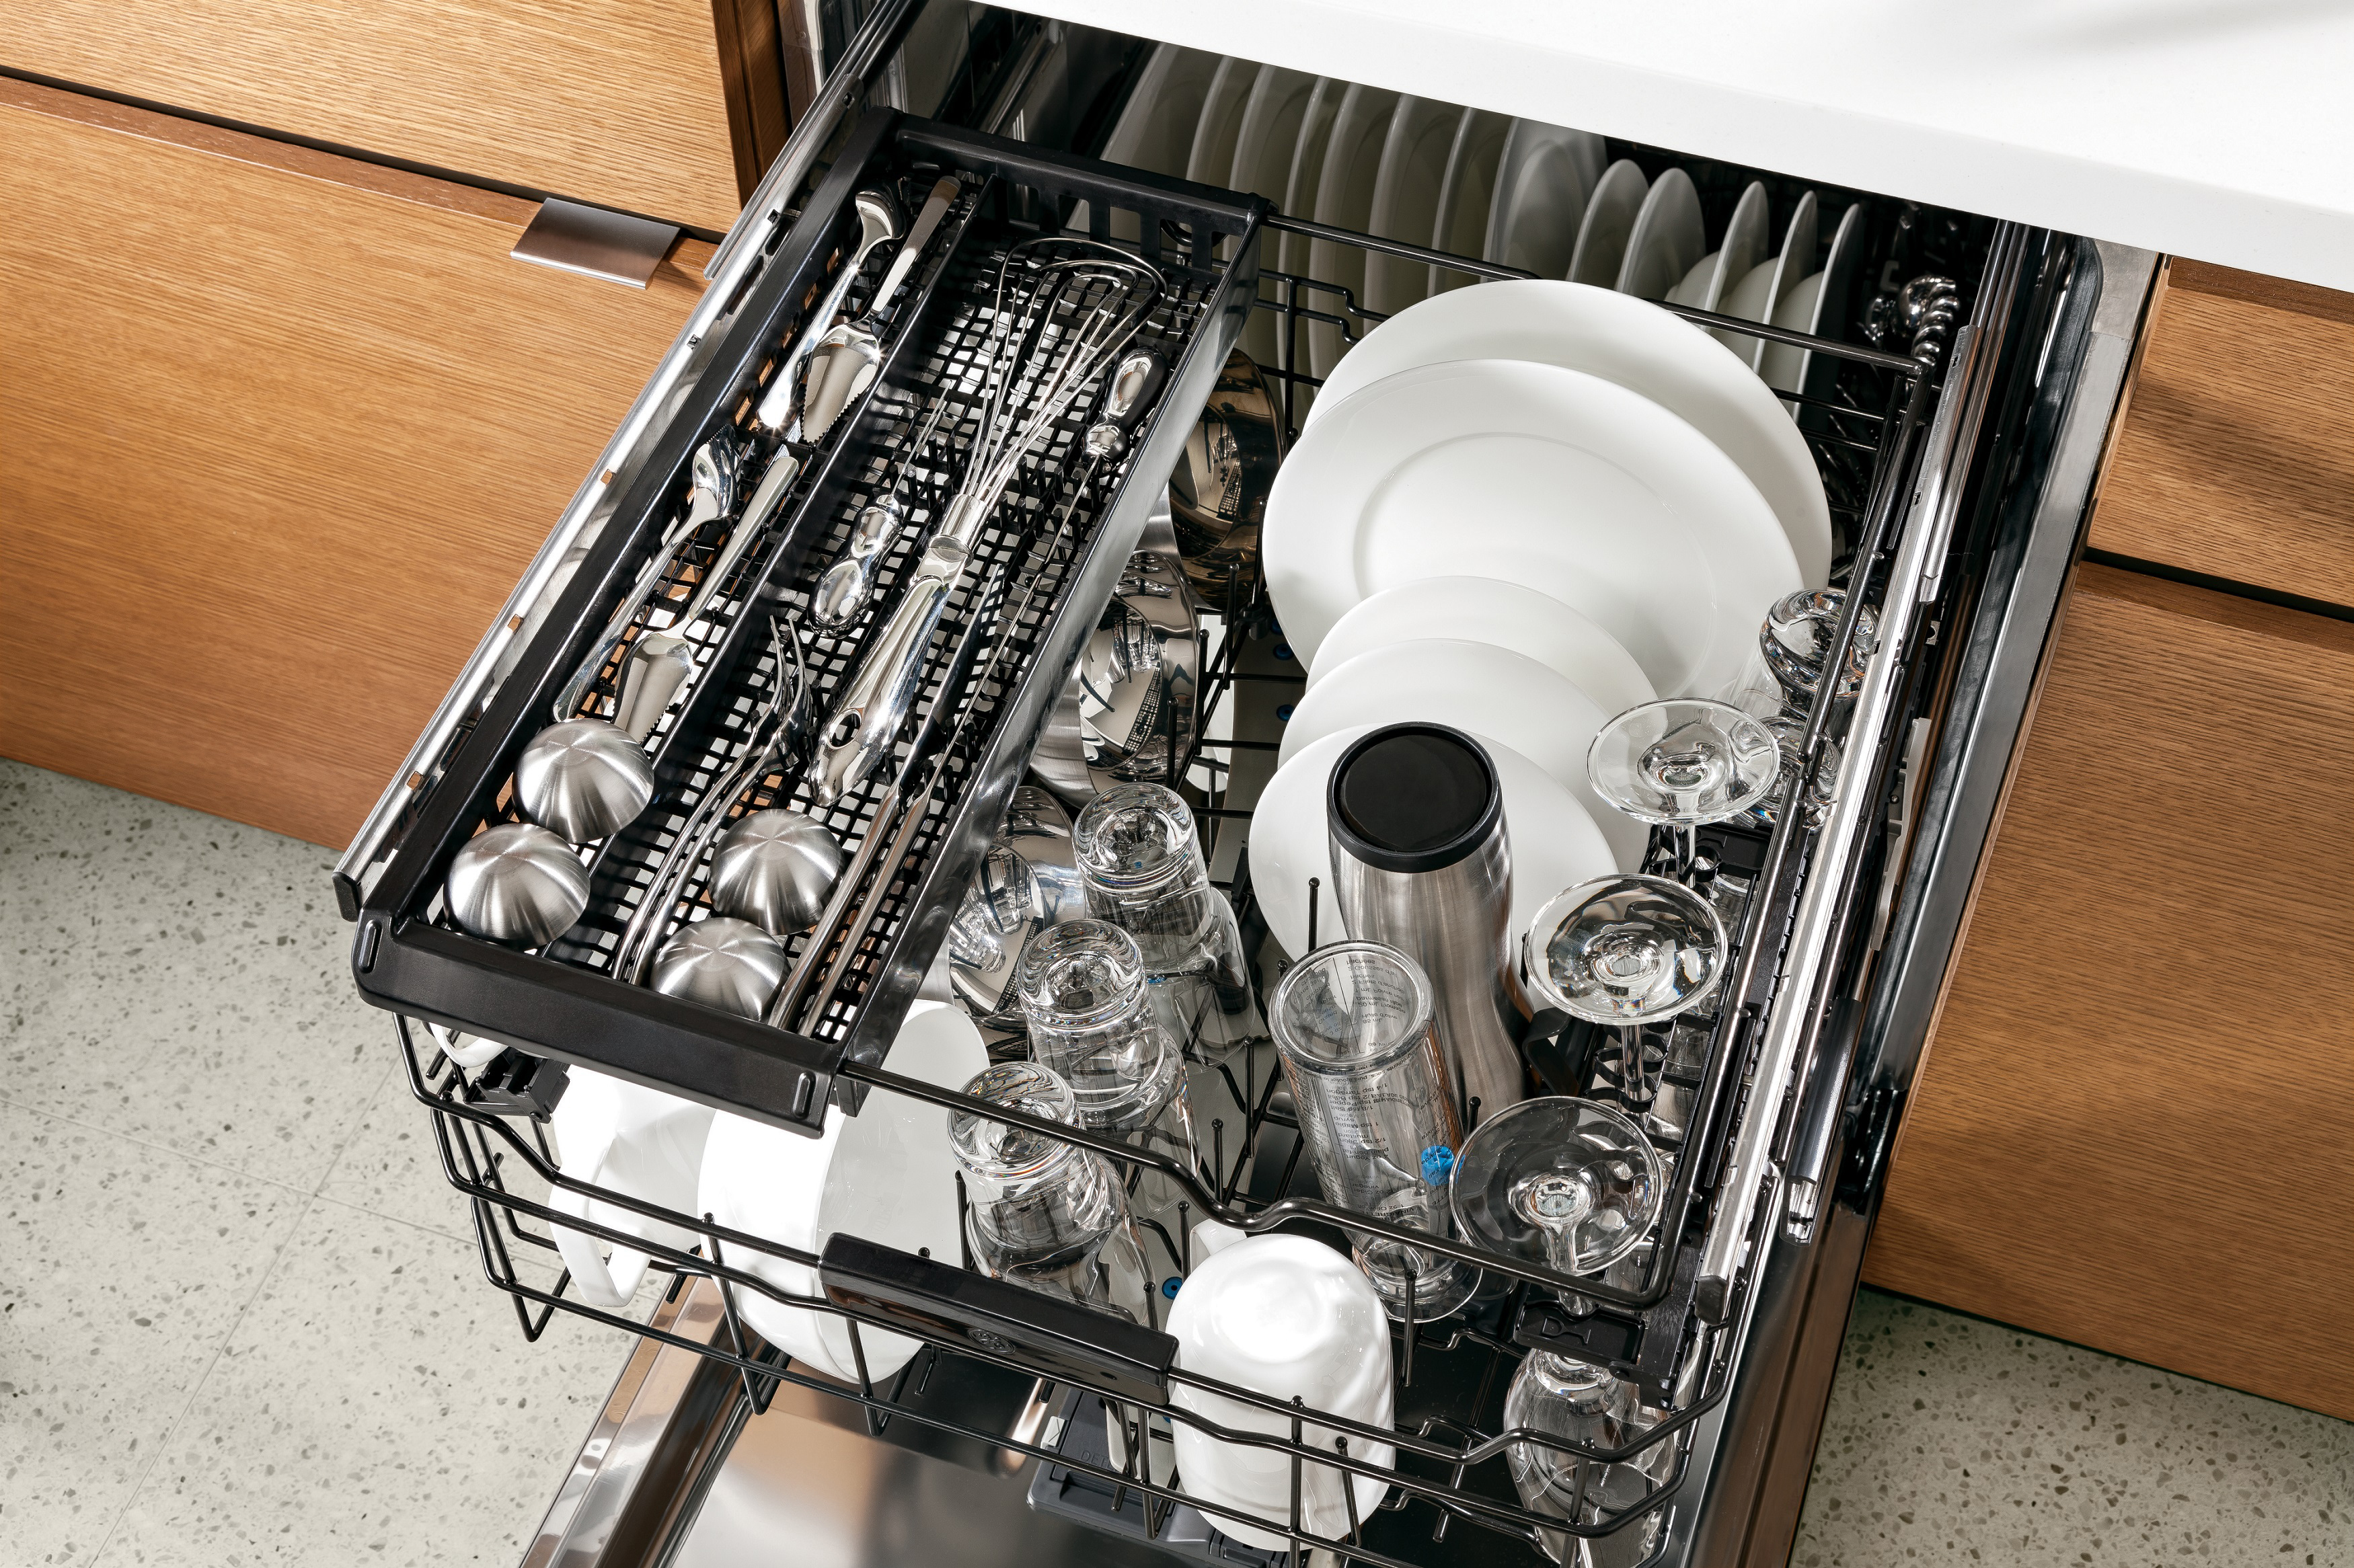 GE's new customizable third rack gives consumers loading flexibility. The rack extends fully and is made up of two trays that can be removed or repositioned for each load. (Photo: General Electric)